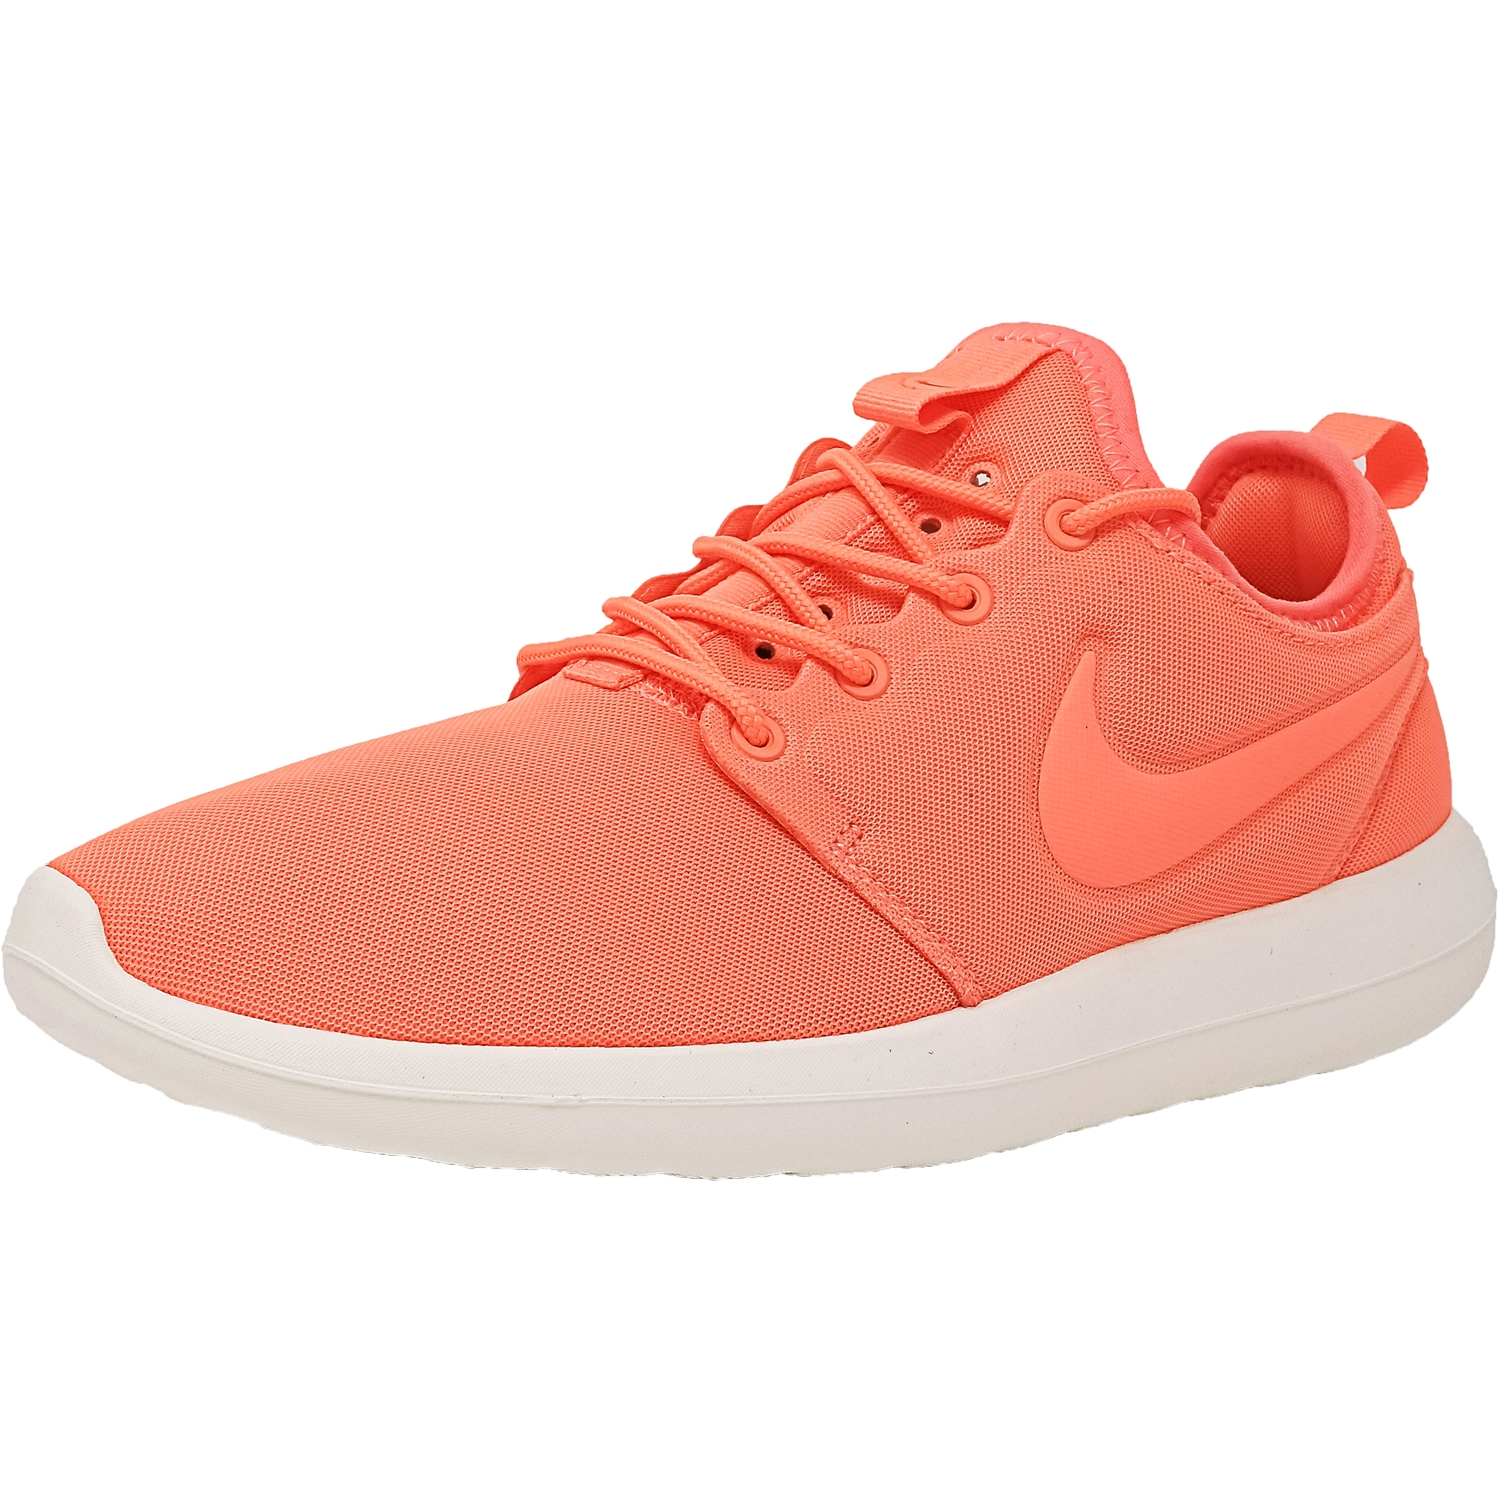 separation shoes 98933 1c0a8 Nike Women s Roshe Two White   White-Pure Platinum Ankle-High Running Shoe  - 10M